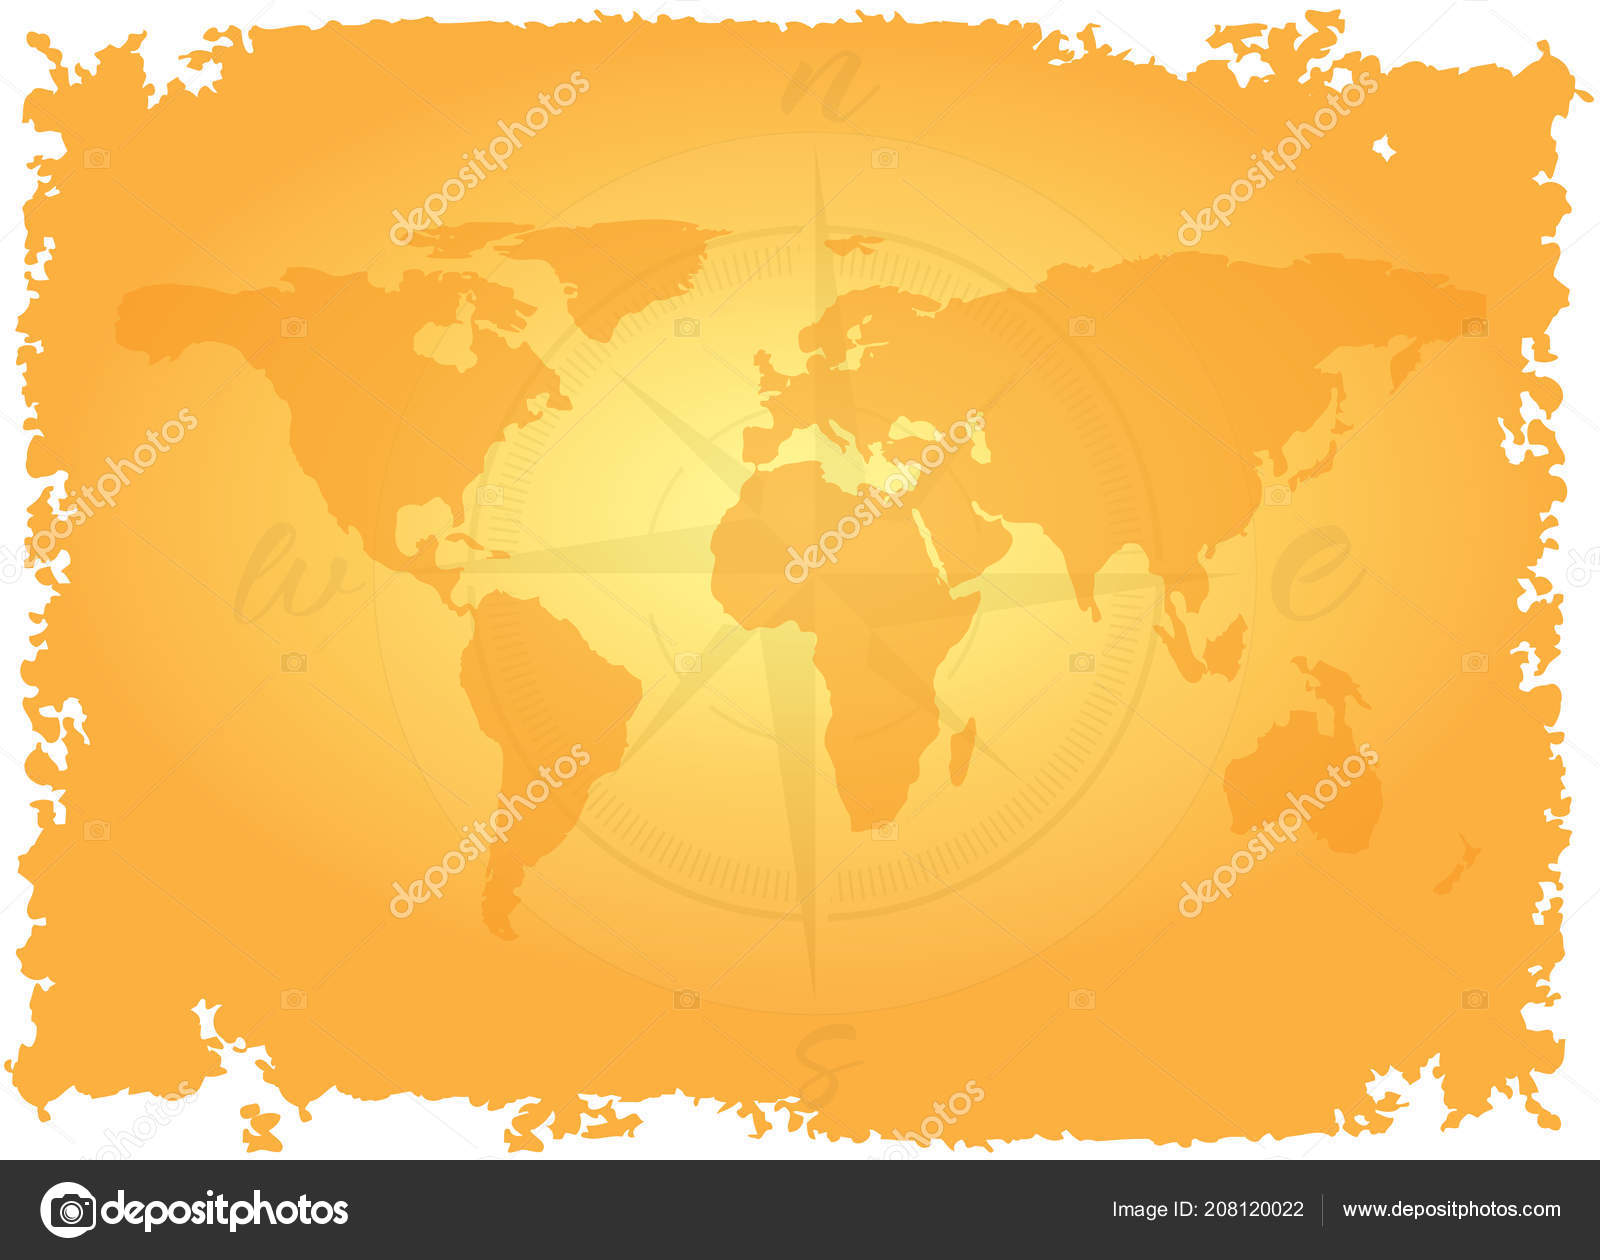 Map Of The World With Compass.Great Detailed Illustration World Map Vintage Style Imitation Old